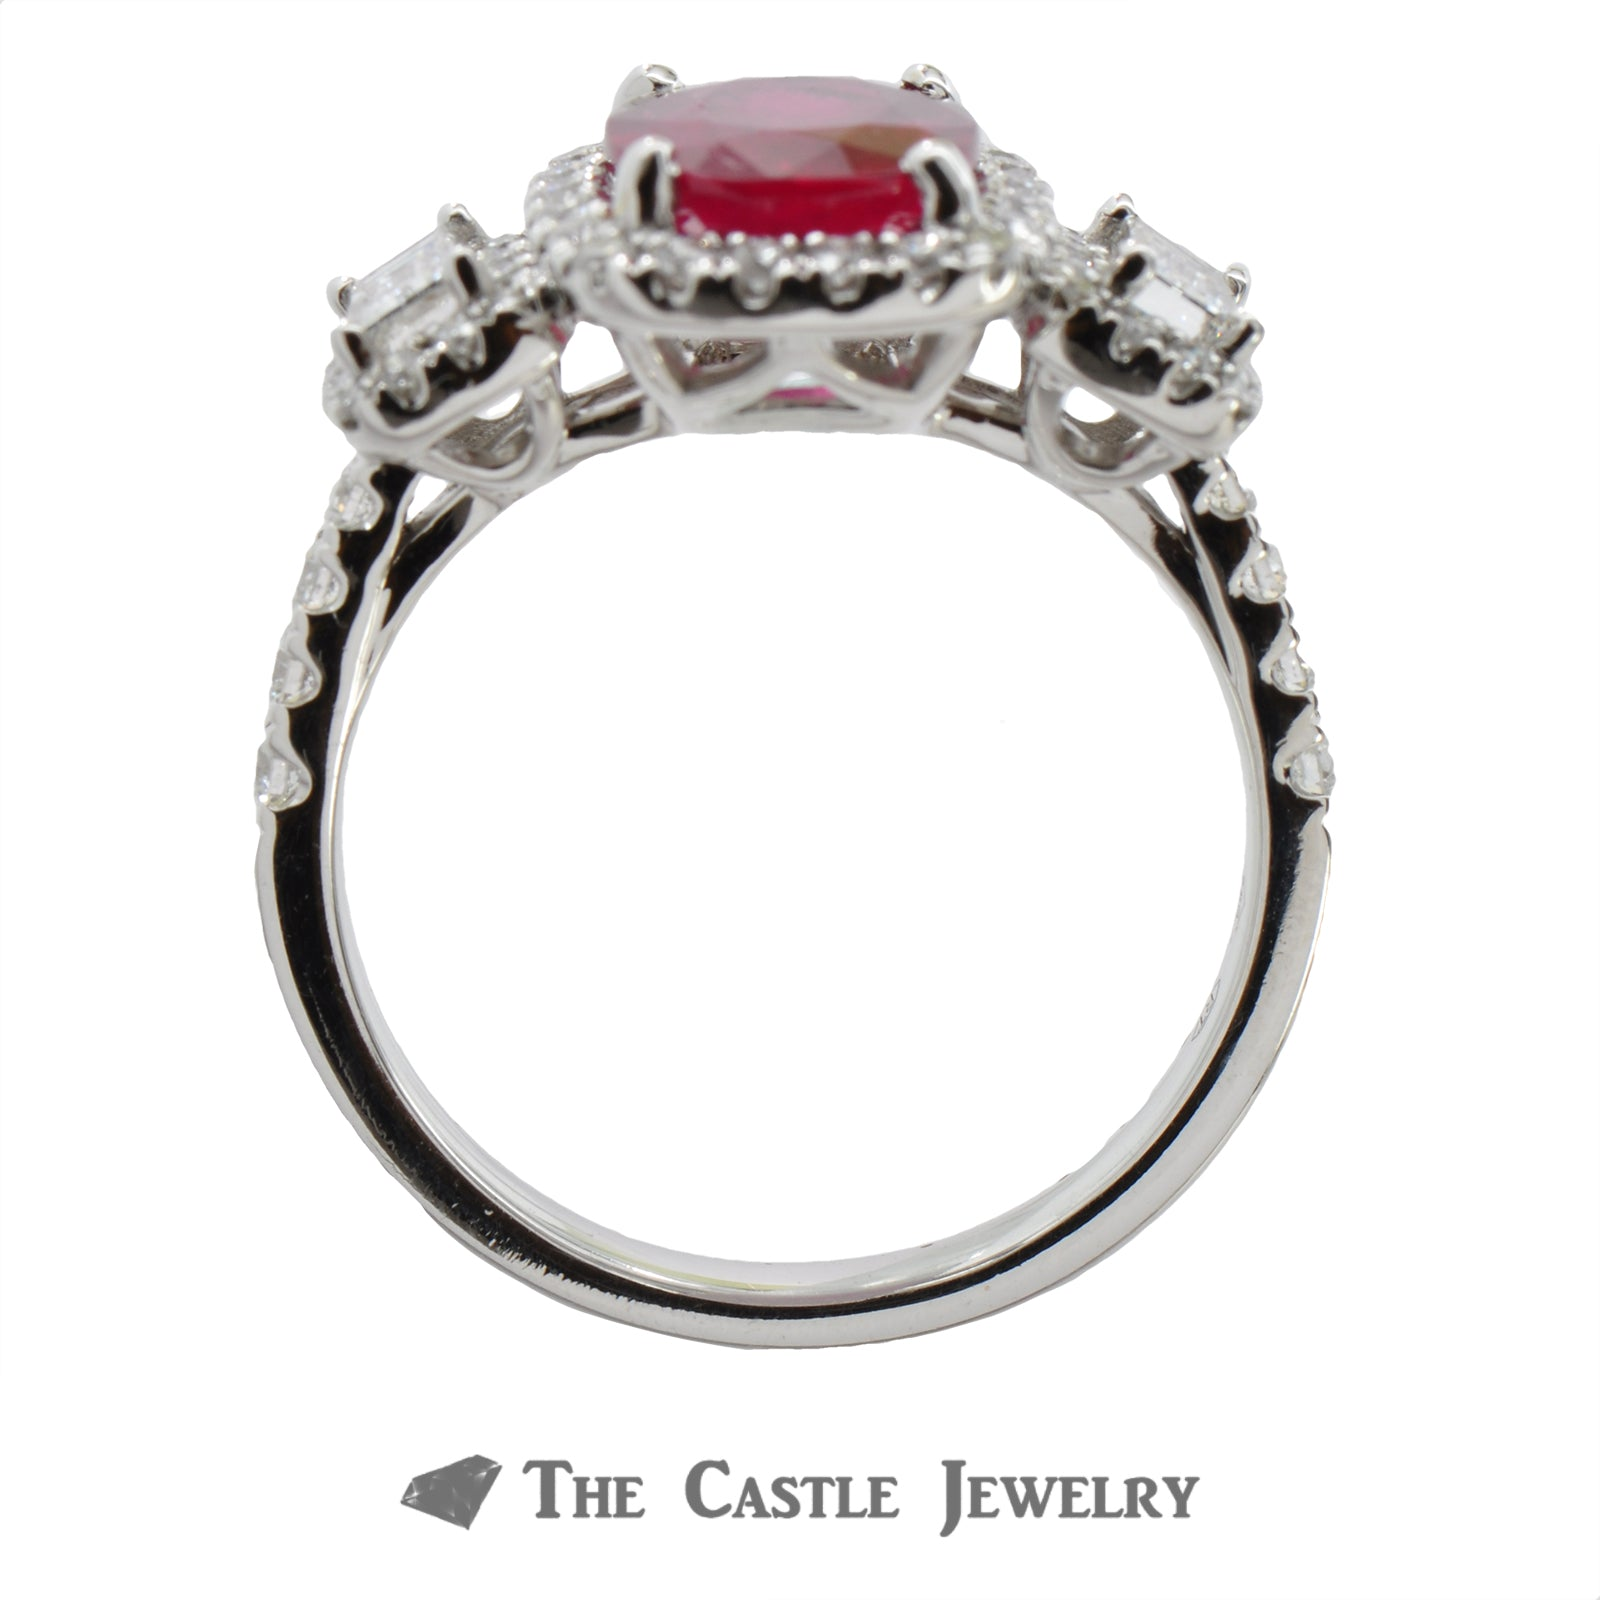 Deep Red Oval Ruby Ring with Emerald Cut Diamond Accents & Bezel-1